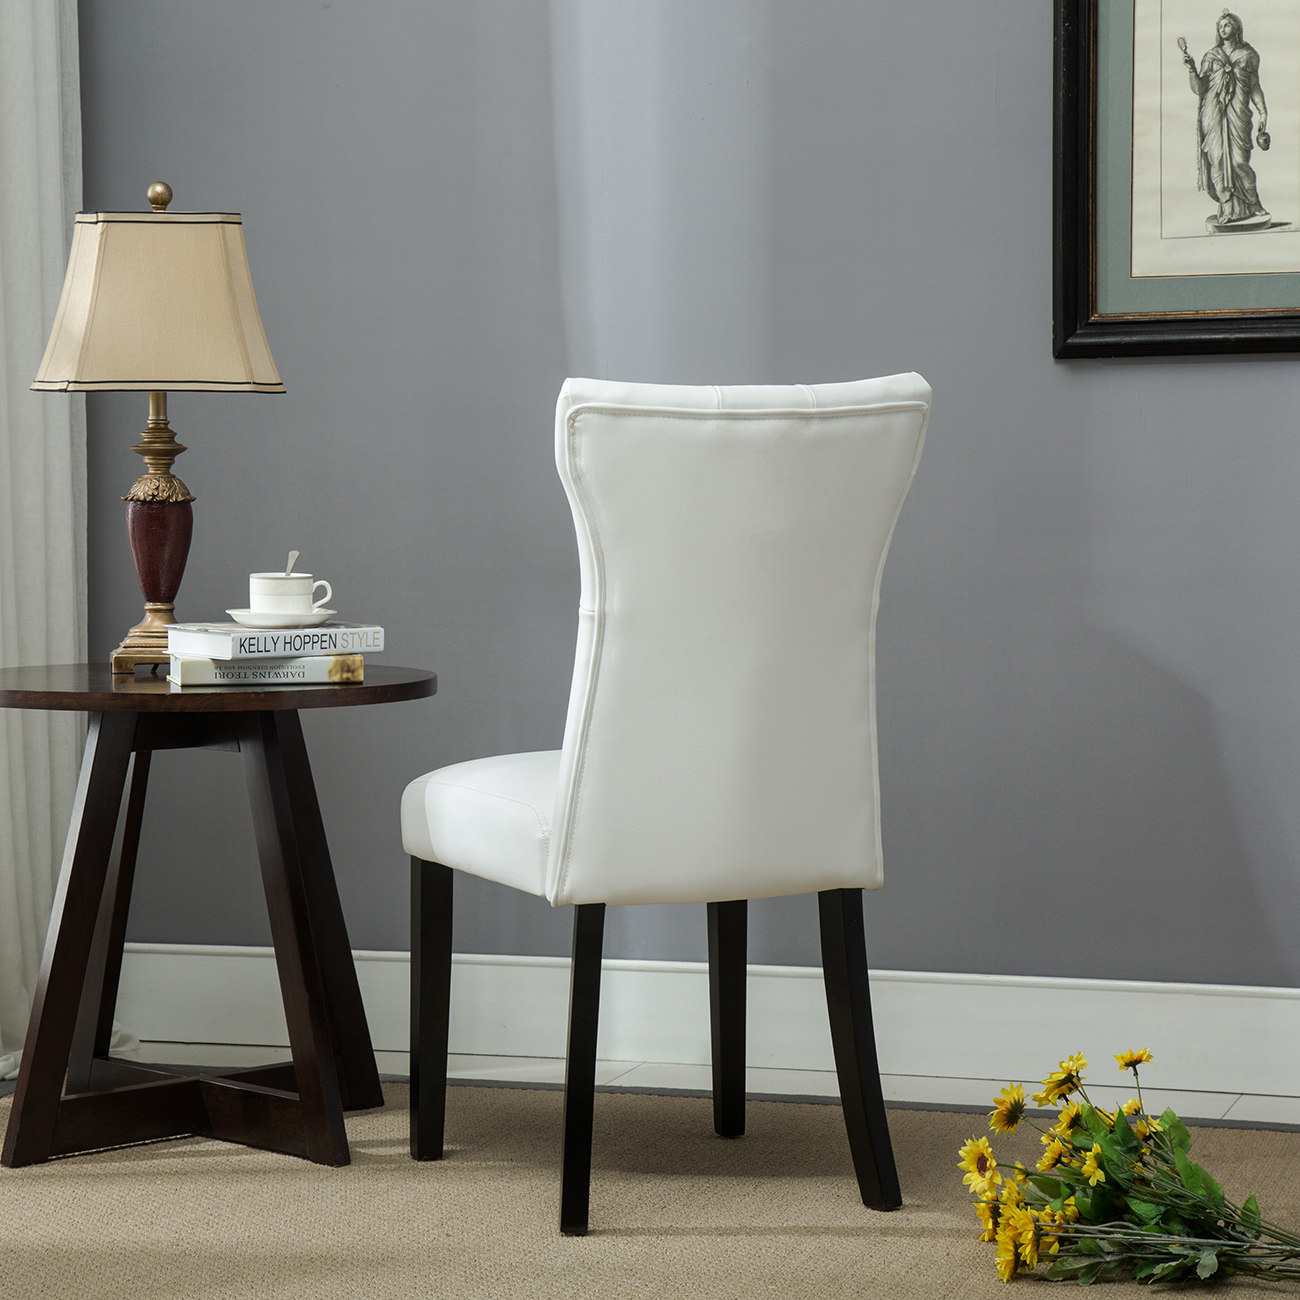 Set of 2 Elegant Design Dining Chair Kitchen Dinette Room